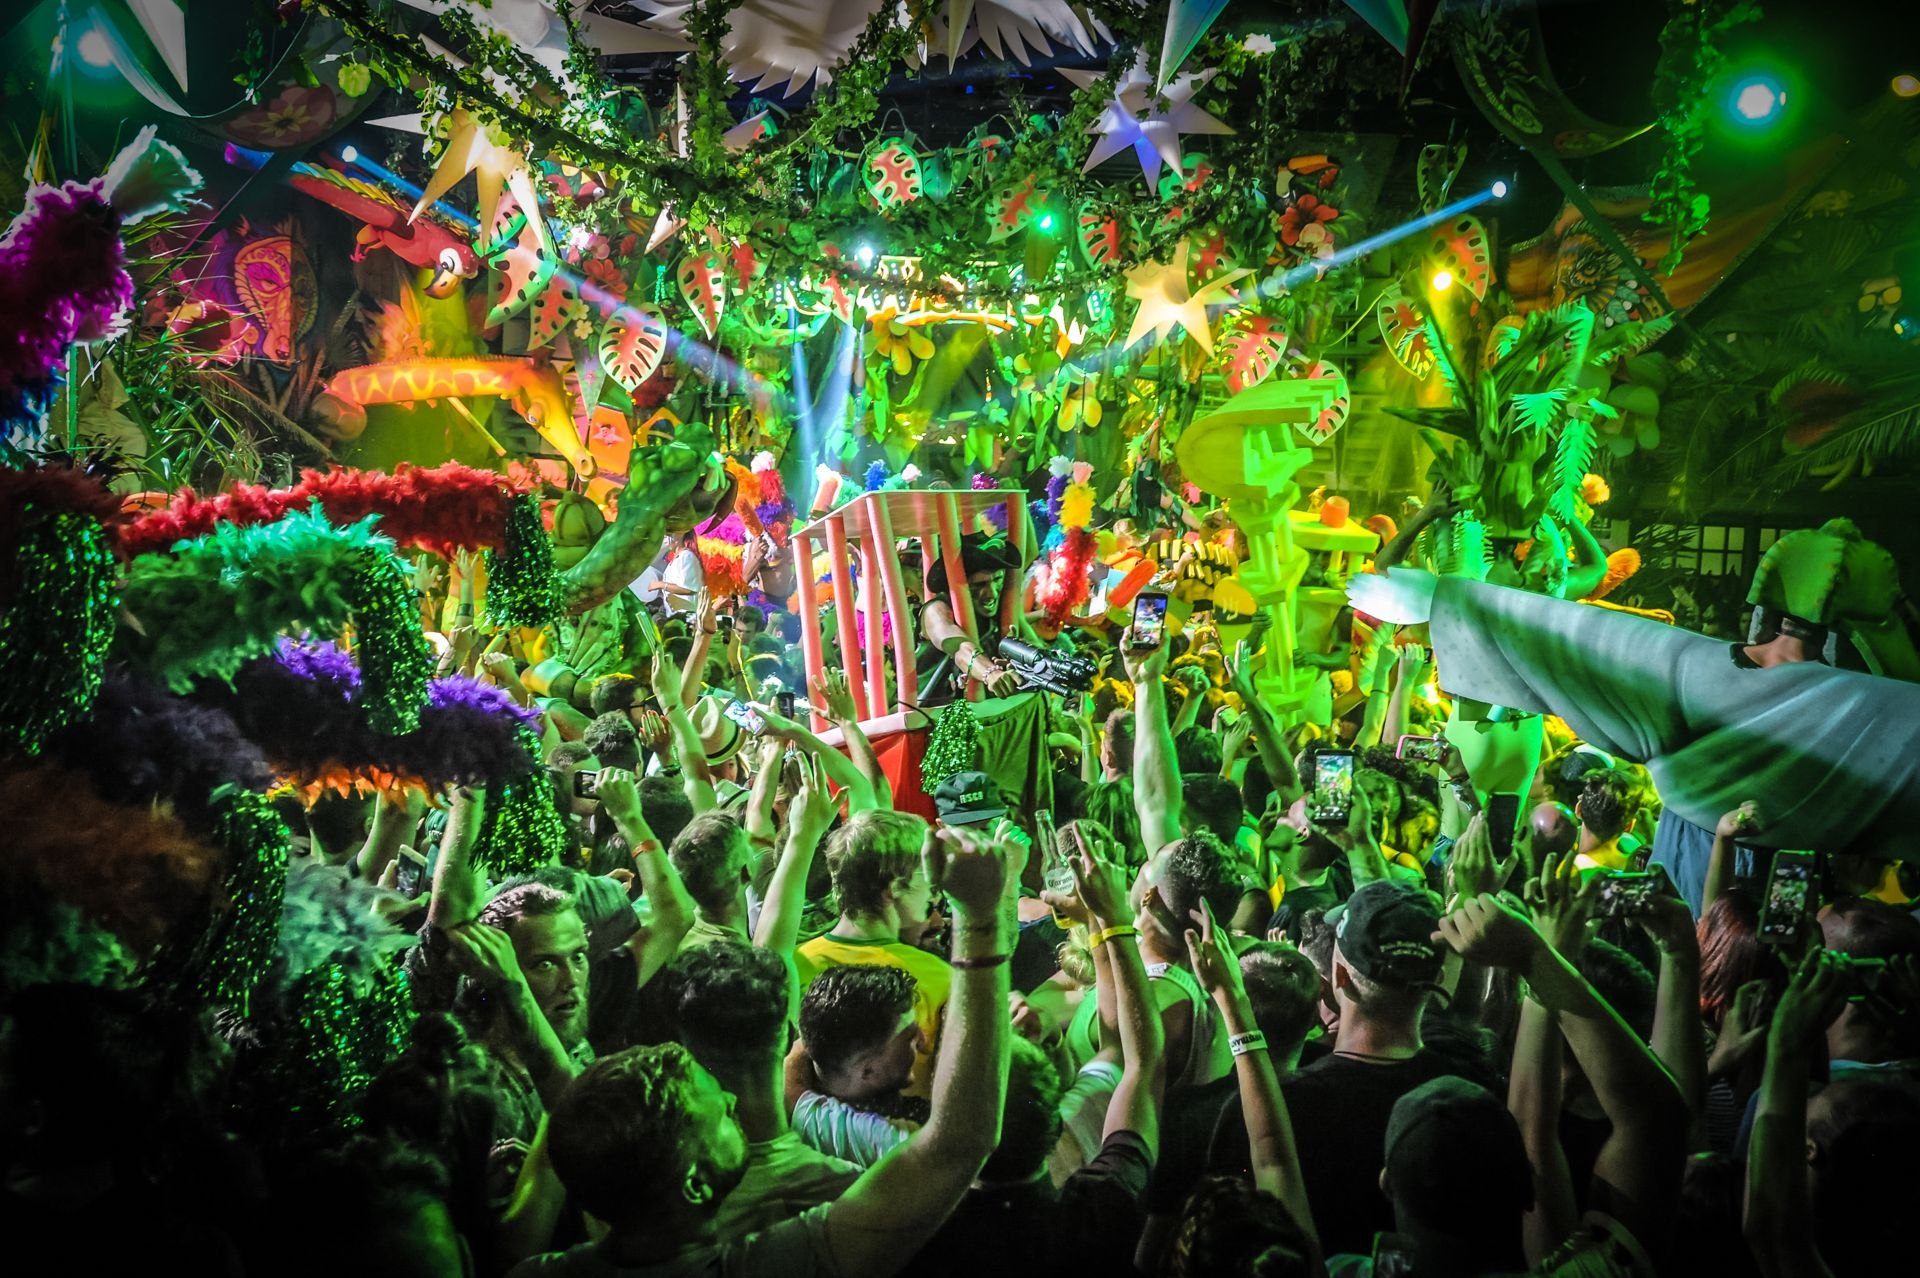 sambowdromo do brasil lost in the deepest amazon our djs go wild but